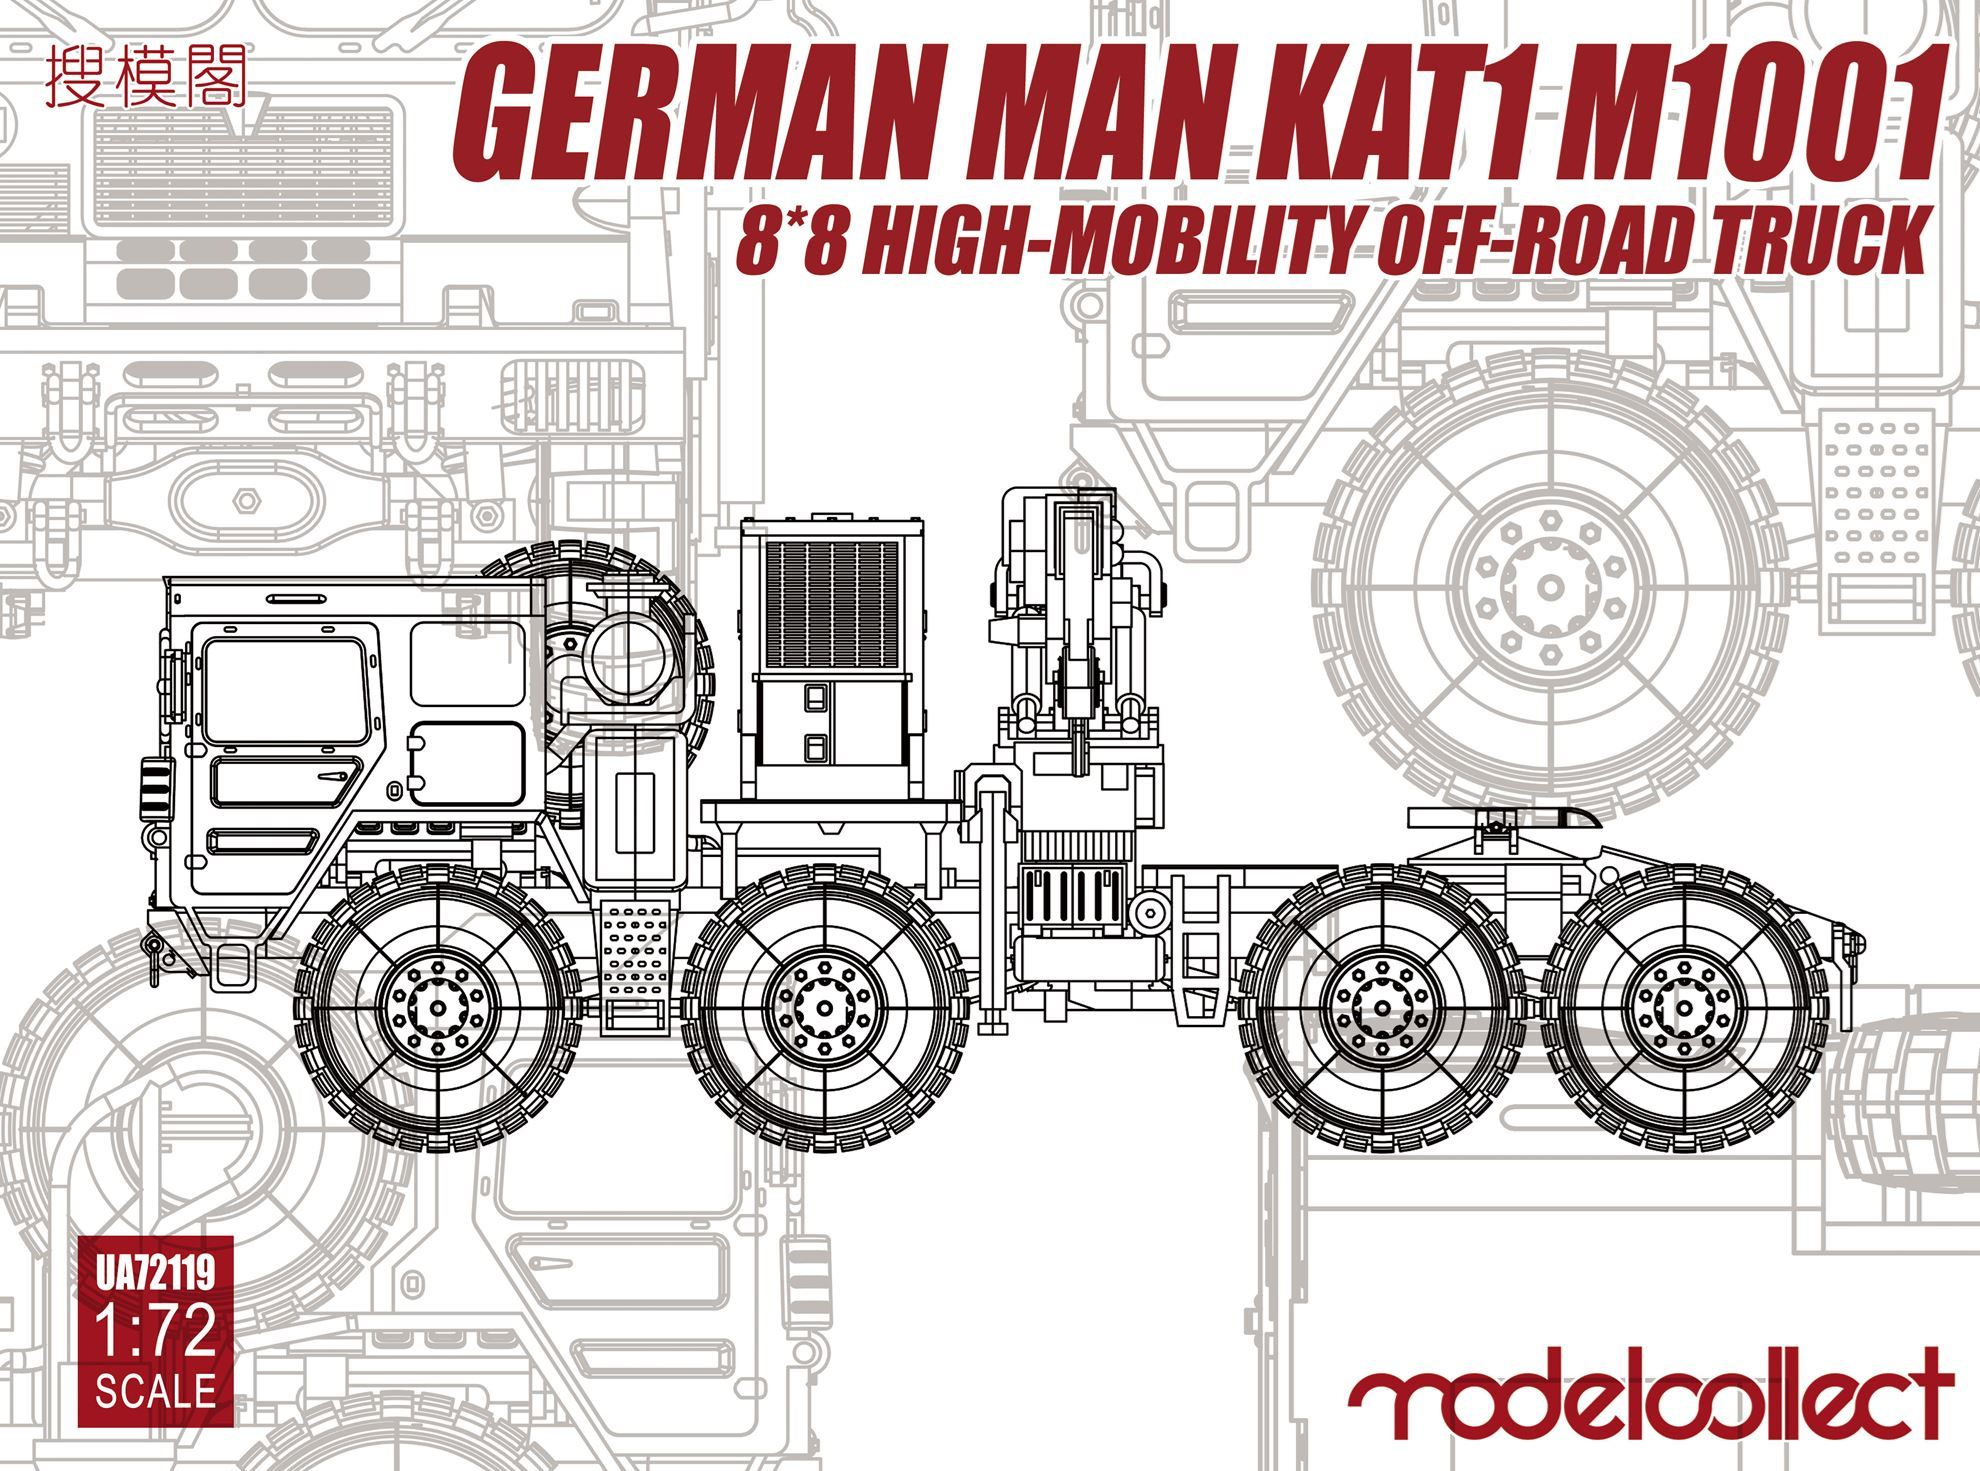 ModelCollect German MAN KAT1M1001 8*8 HIGH-Mobility off-road truck